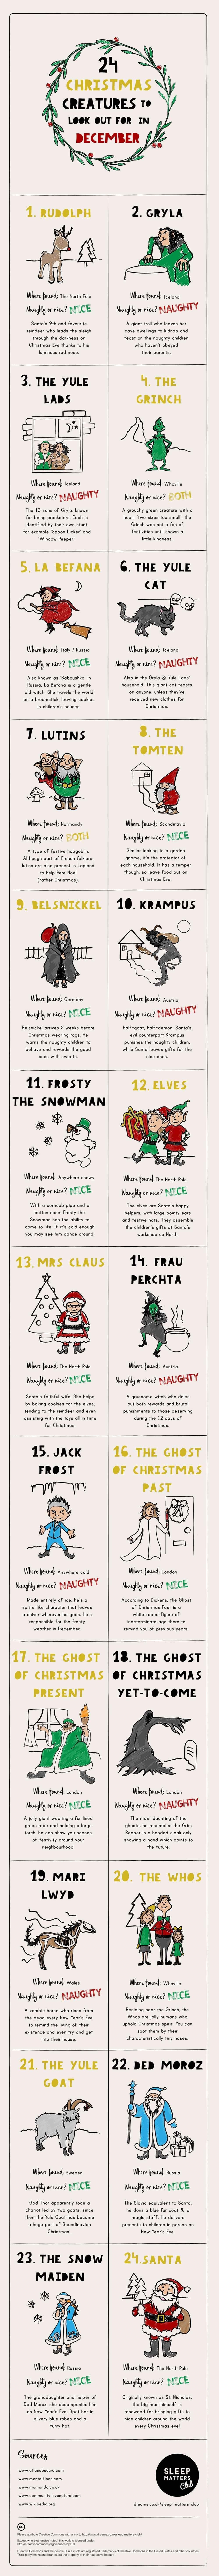 24 Christmas Creatures To Look Out For In December #infographic